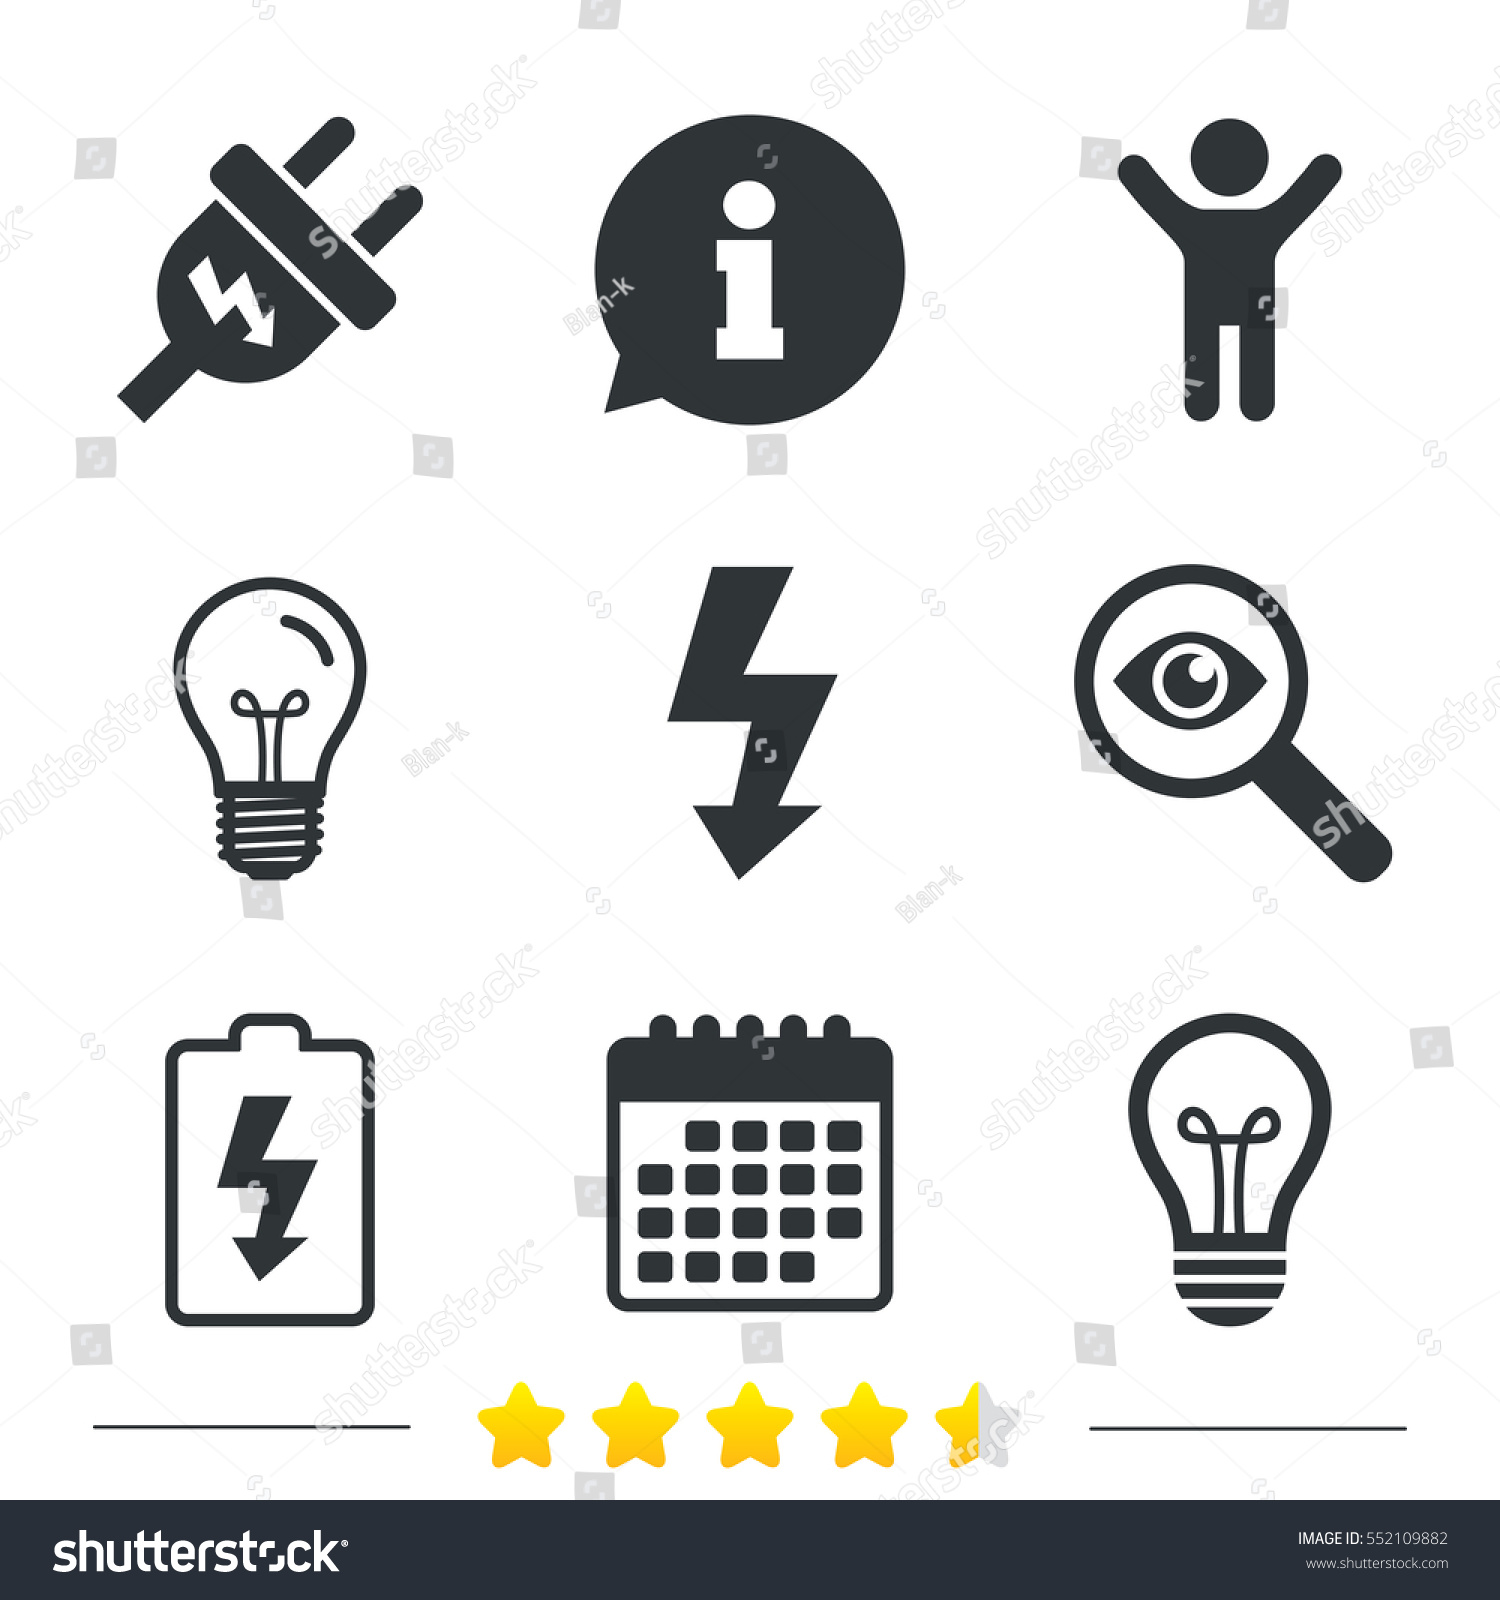 Electric Plug Icon Lamp Bulb Battery Stock Vector HD (Royalty Free ...